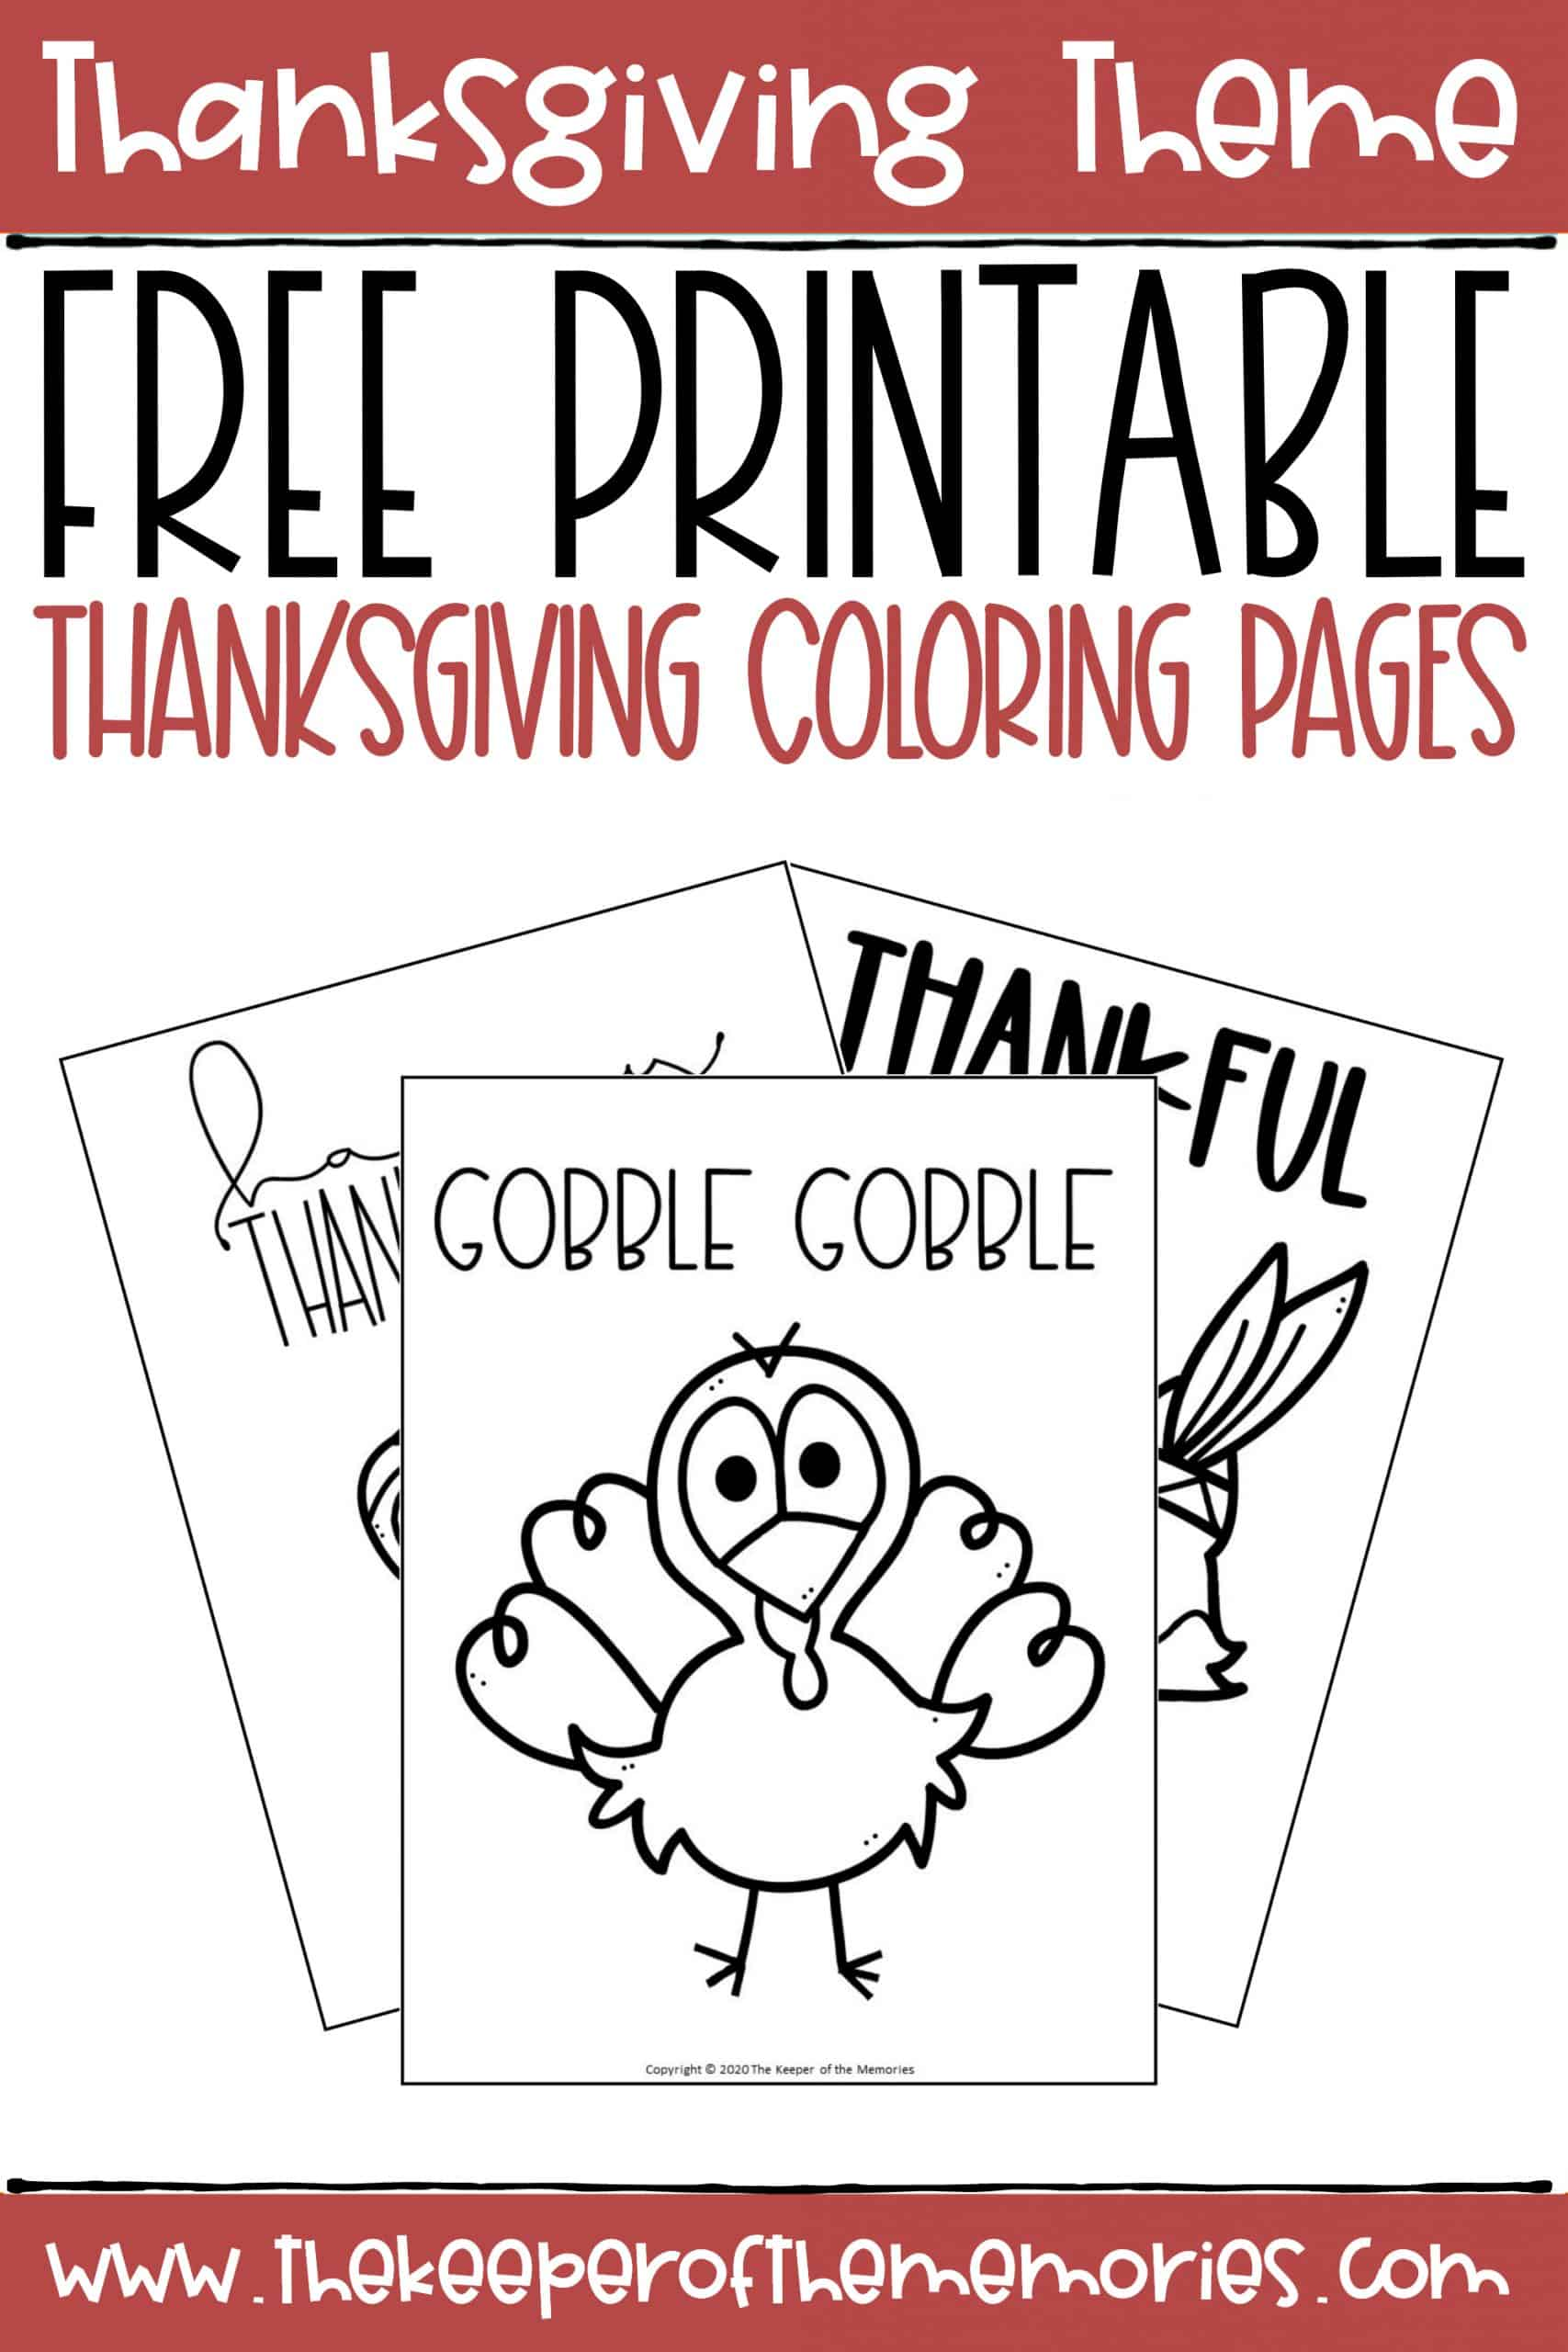 Free Printable Thanksgiving Coloring Pages The Keeper Of The Memories